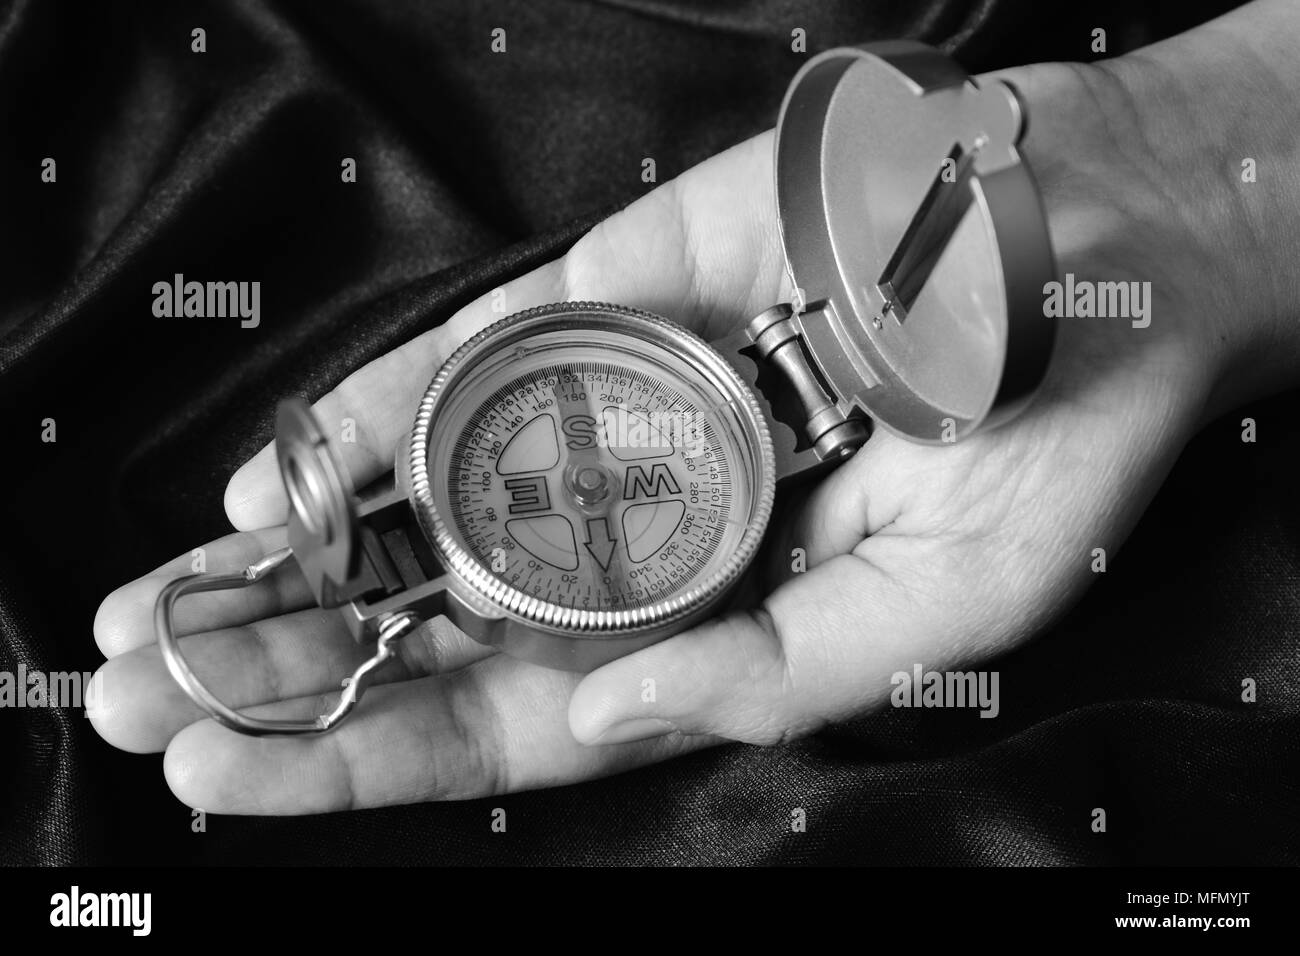 A magnetic compass in the palm of a hand. - Stock Image